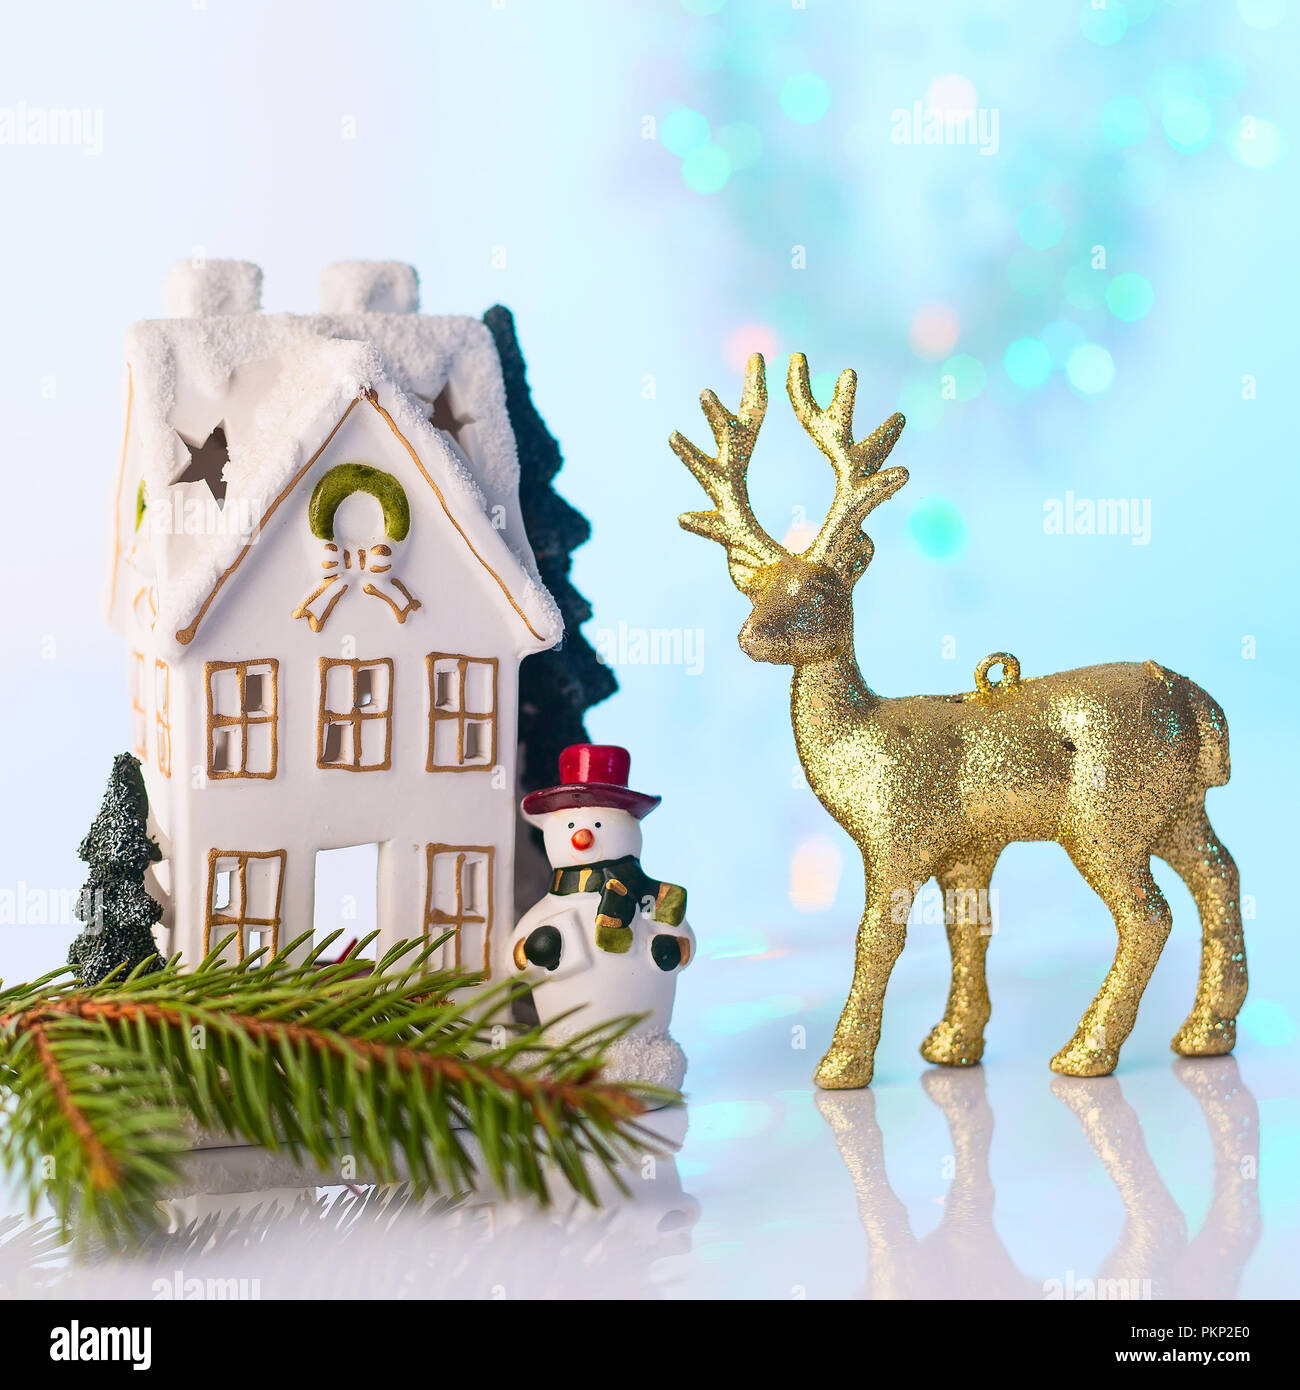 Christmas or New Year snow house, snowman and golden reindeer, blue and turquoise bokeh background with lights - Stock Image